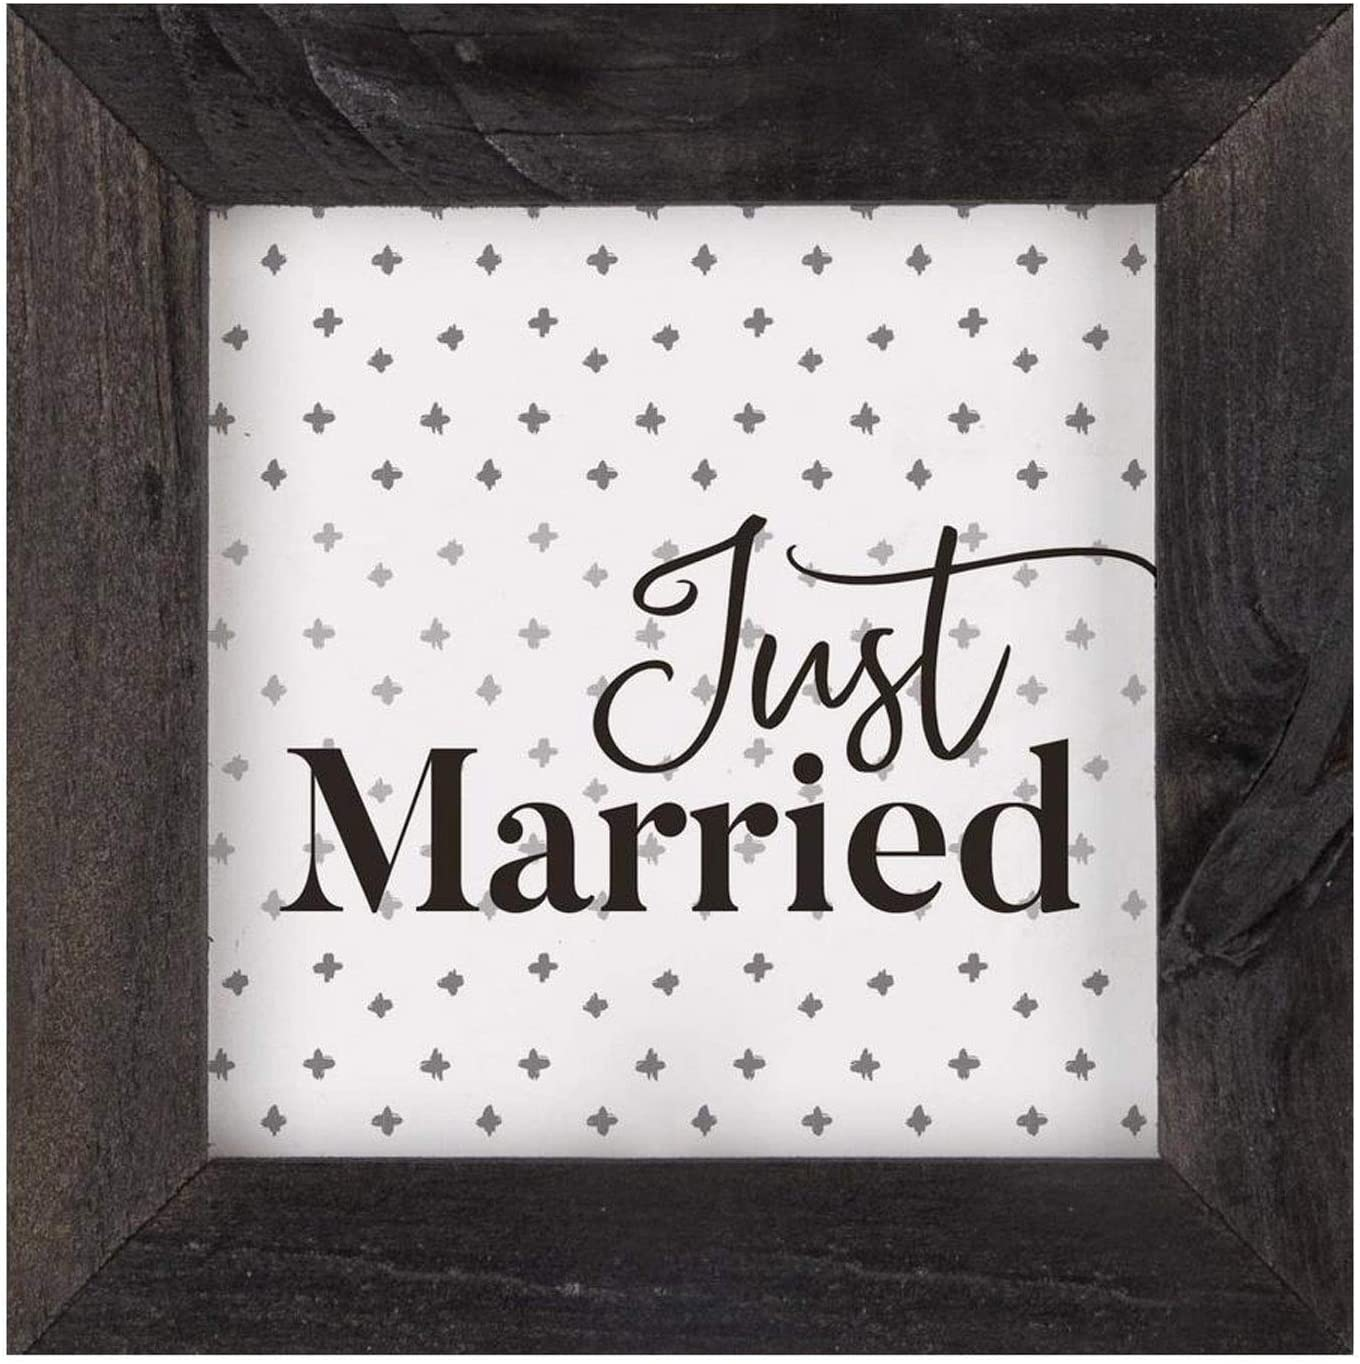 P. Graham Dunn Just Married Black and White 5 x 5 Pine Wood Decorative Framed Art Plaque